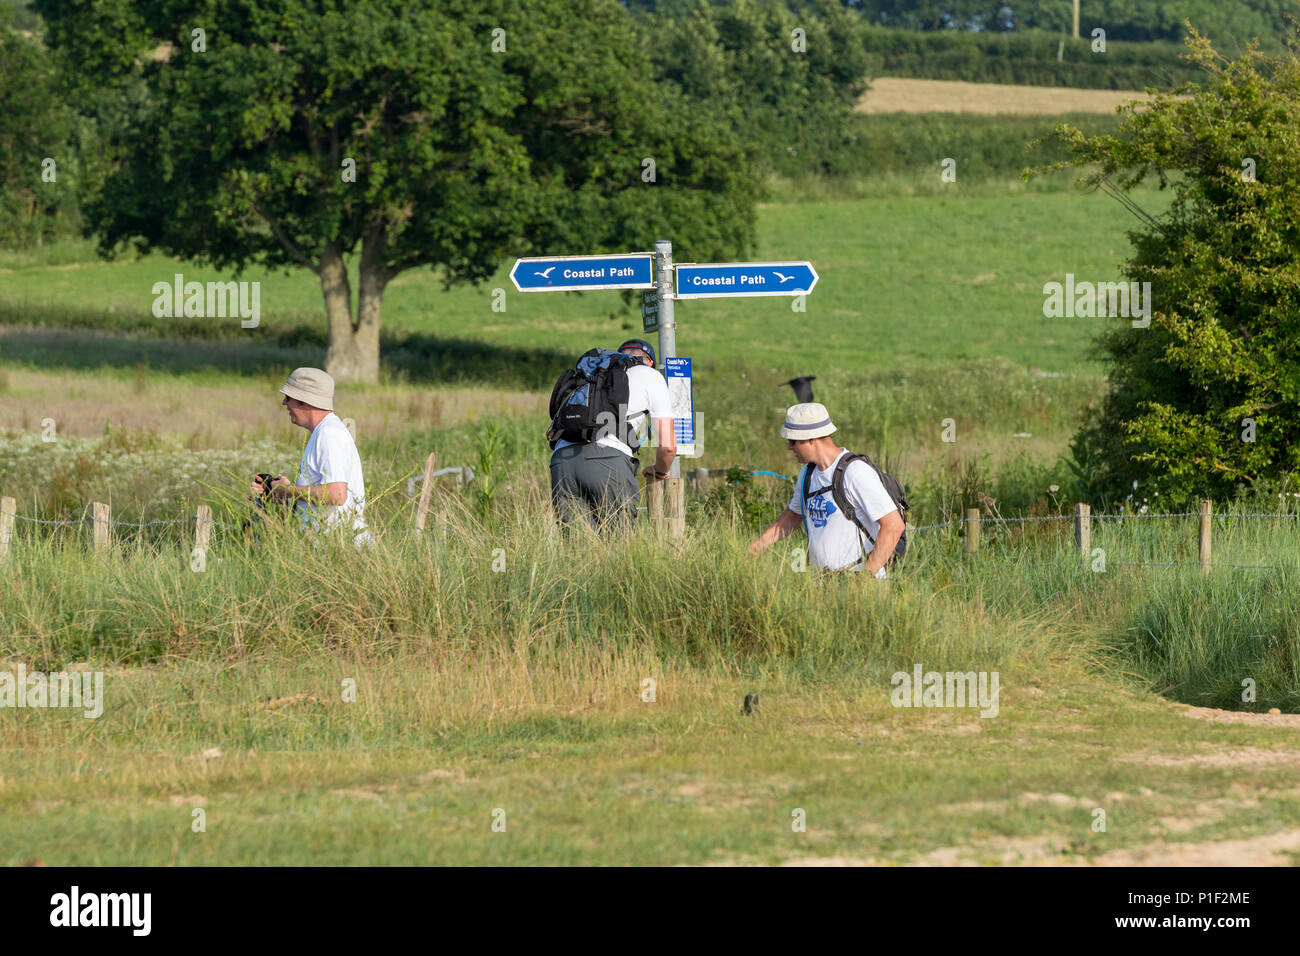 three men walking the isle of wight coastal path wearing hats in the hot weather to protect against sunburn. trekking, rambling and walking on island. - Stock Image